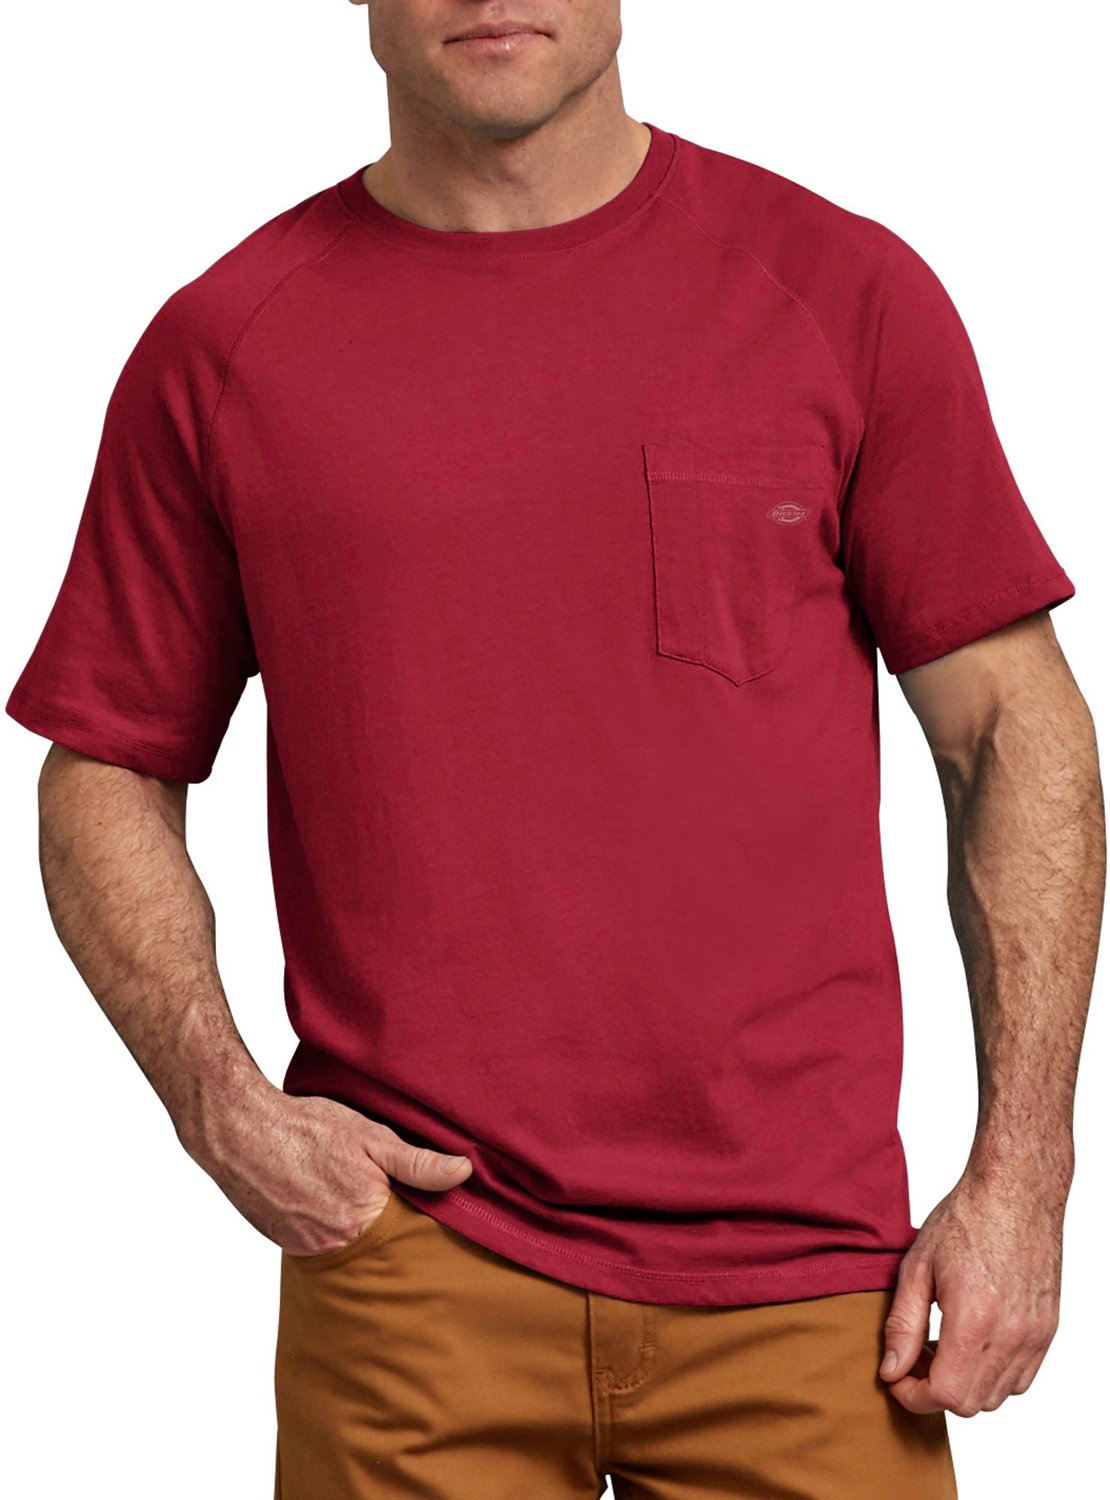 60b84874 Display product reviews for Dickies Men's Temp-iQ Performance Cooling T-shirt  This ...